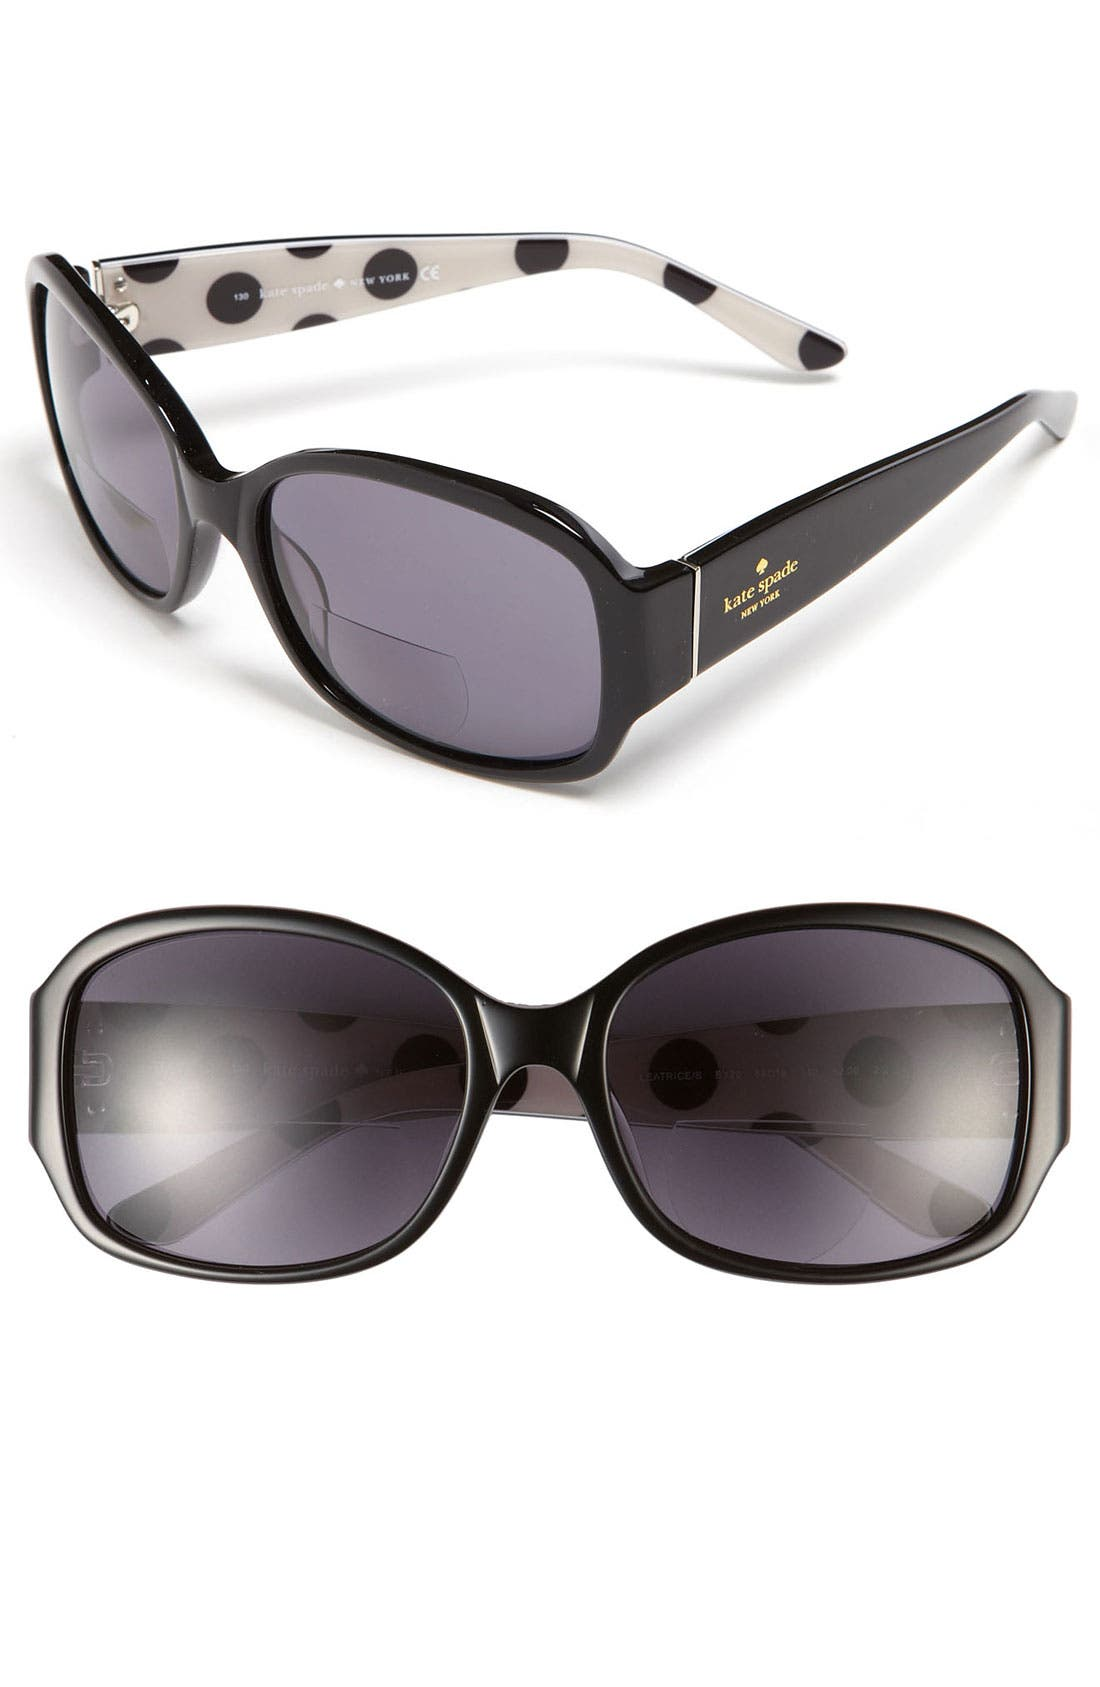 Main Image - kate spade new york 'leatrice' 58mm bifocal reading sunglasses (2 for $88)